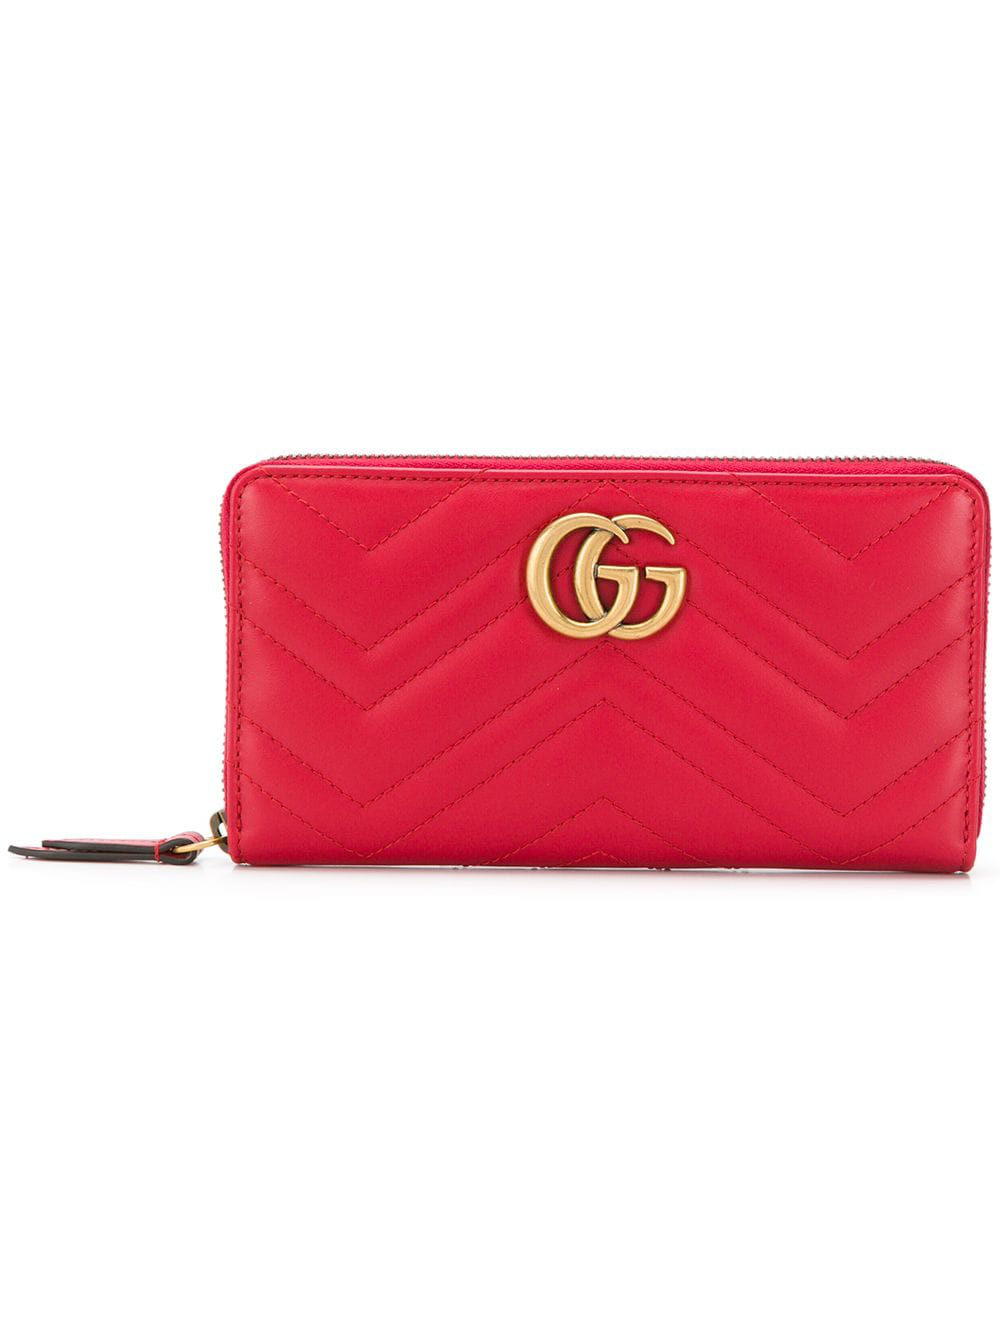 7ba4dfb432b Gucci Gg Marmont Wallet - Red